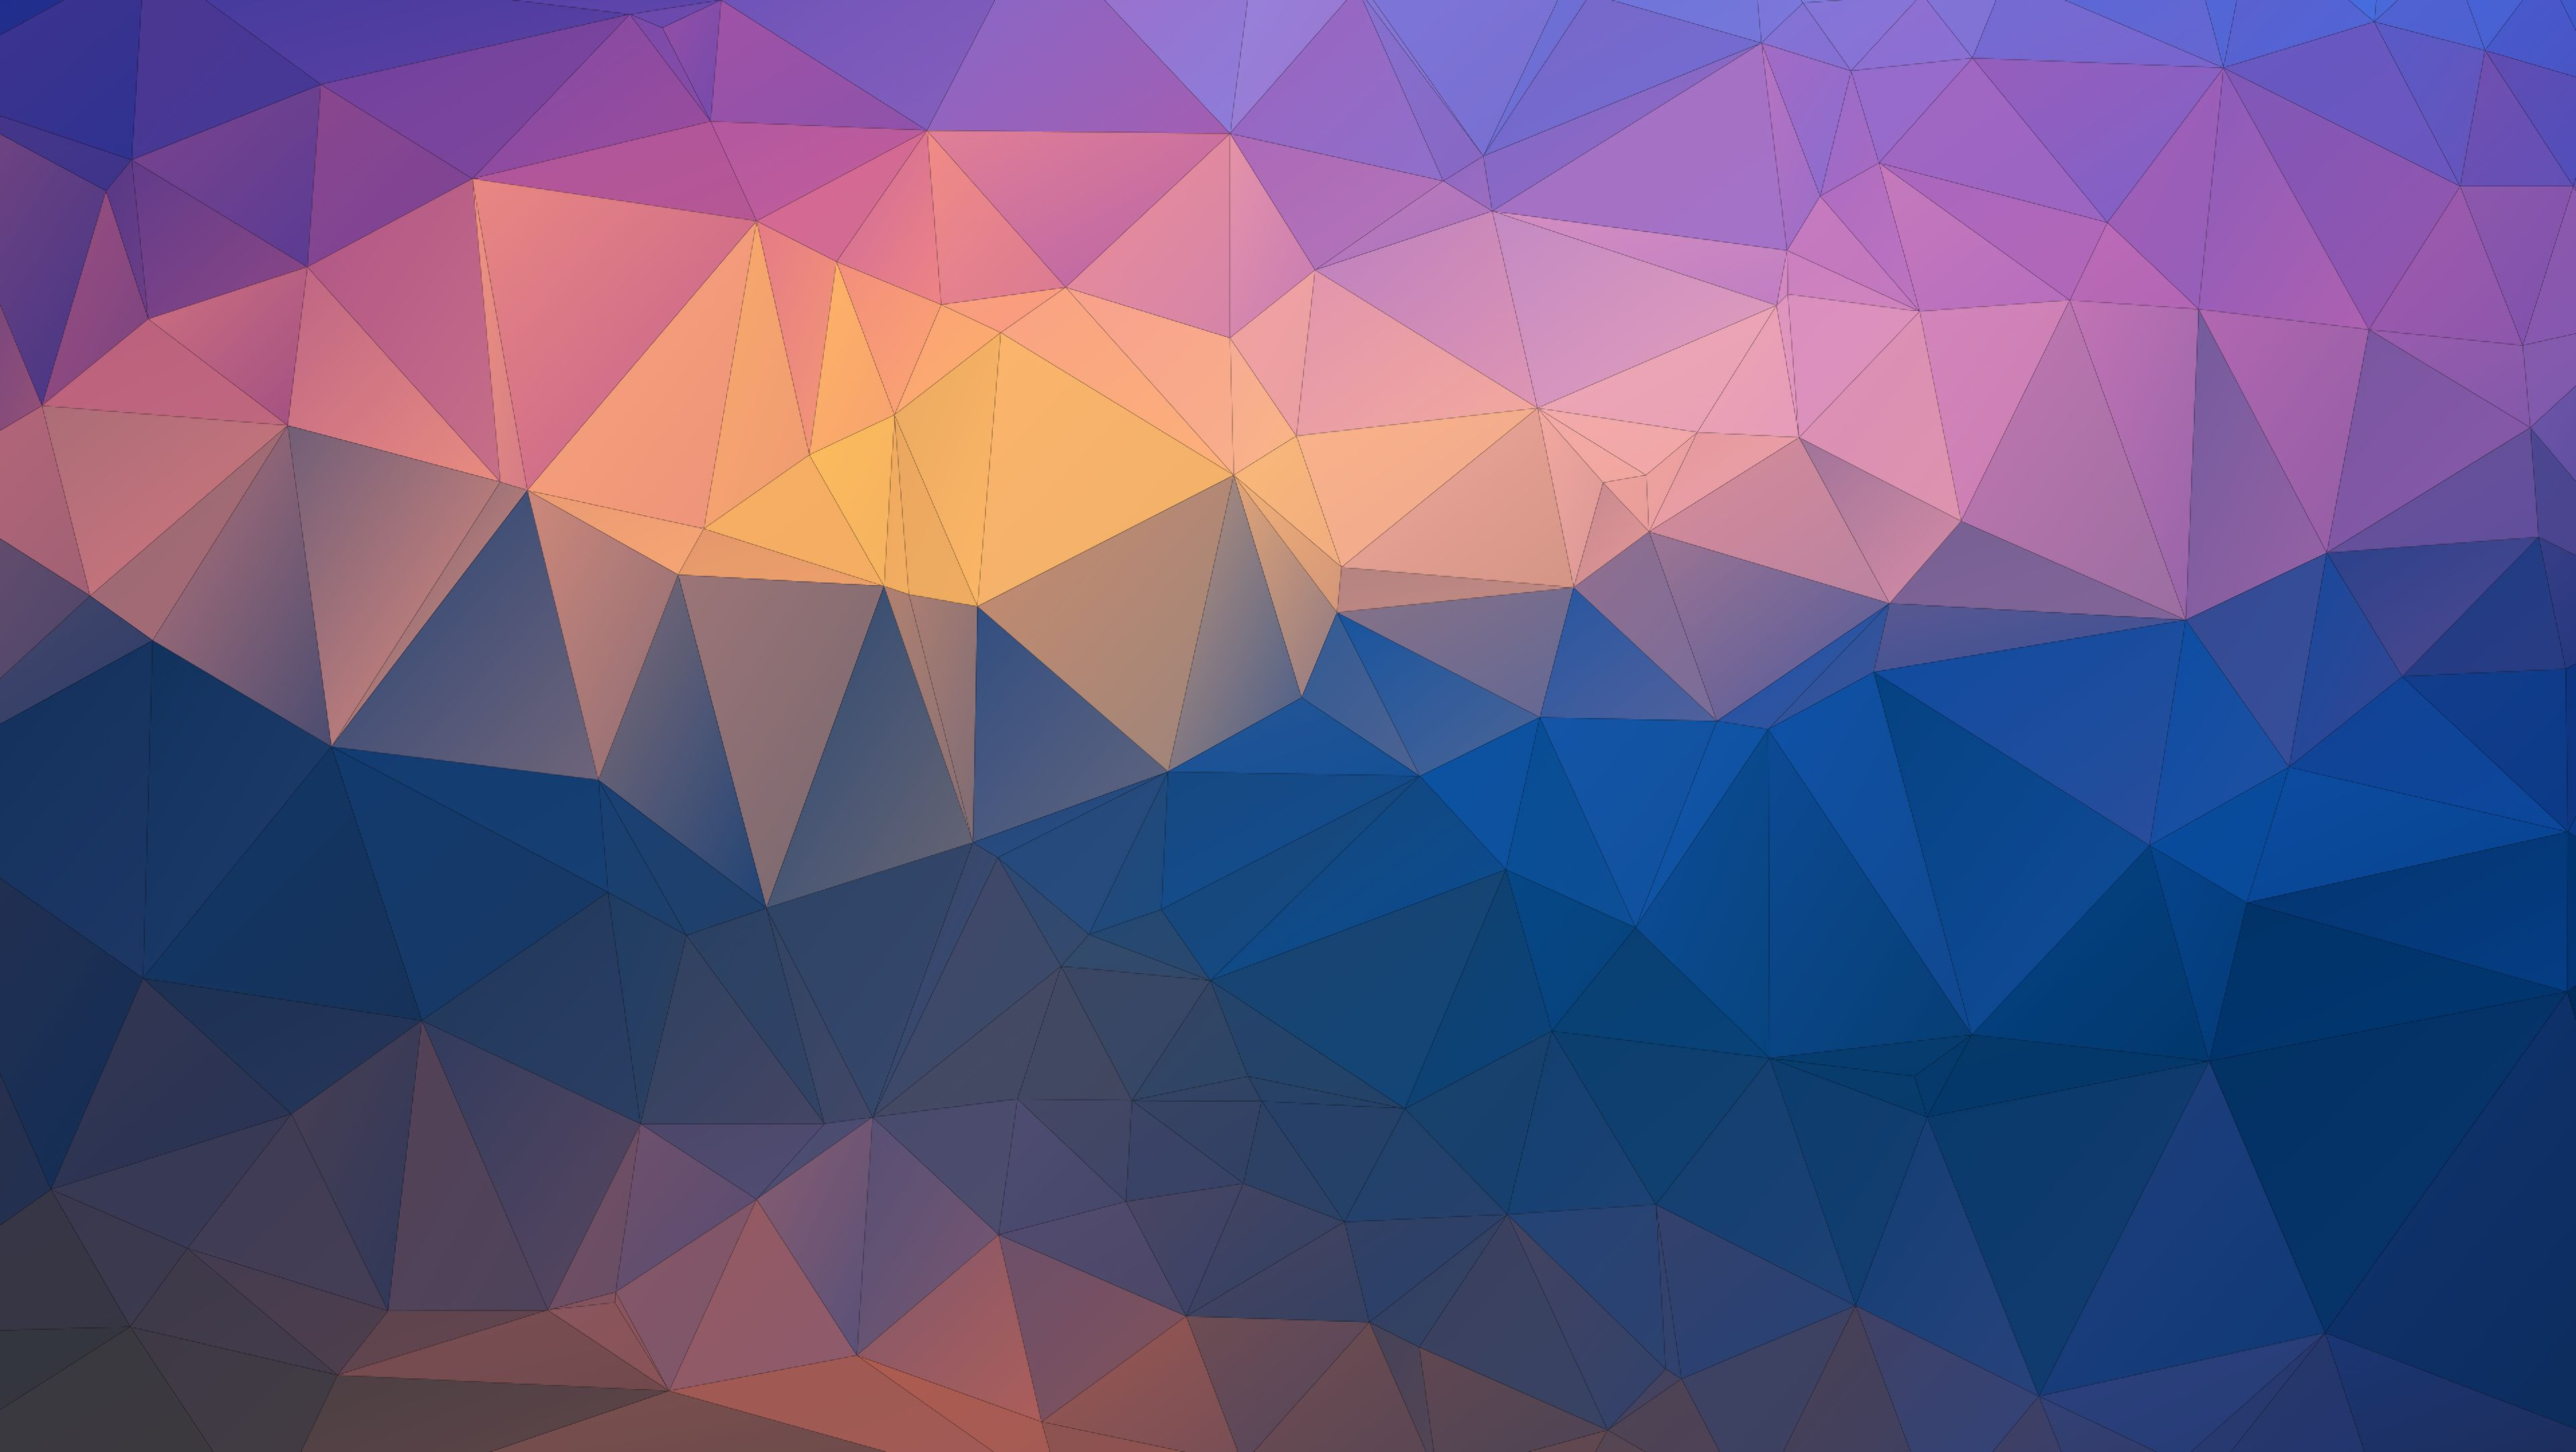 58818 download wallpaper Textures, Texture, Polygon, Triangles, Convex, Convexity, Gradient screensavers and pictures for free